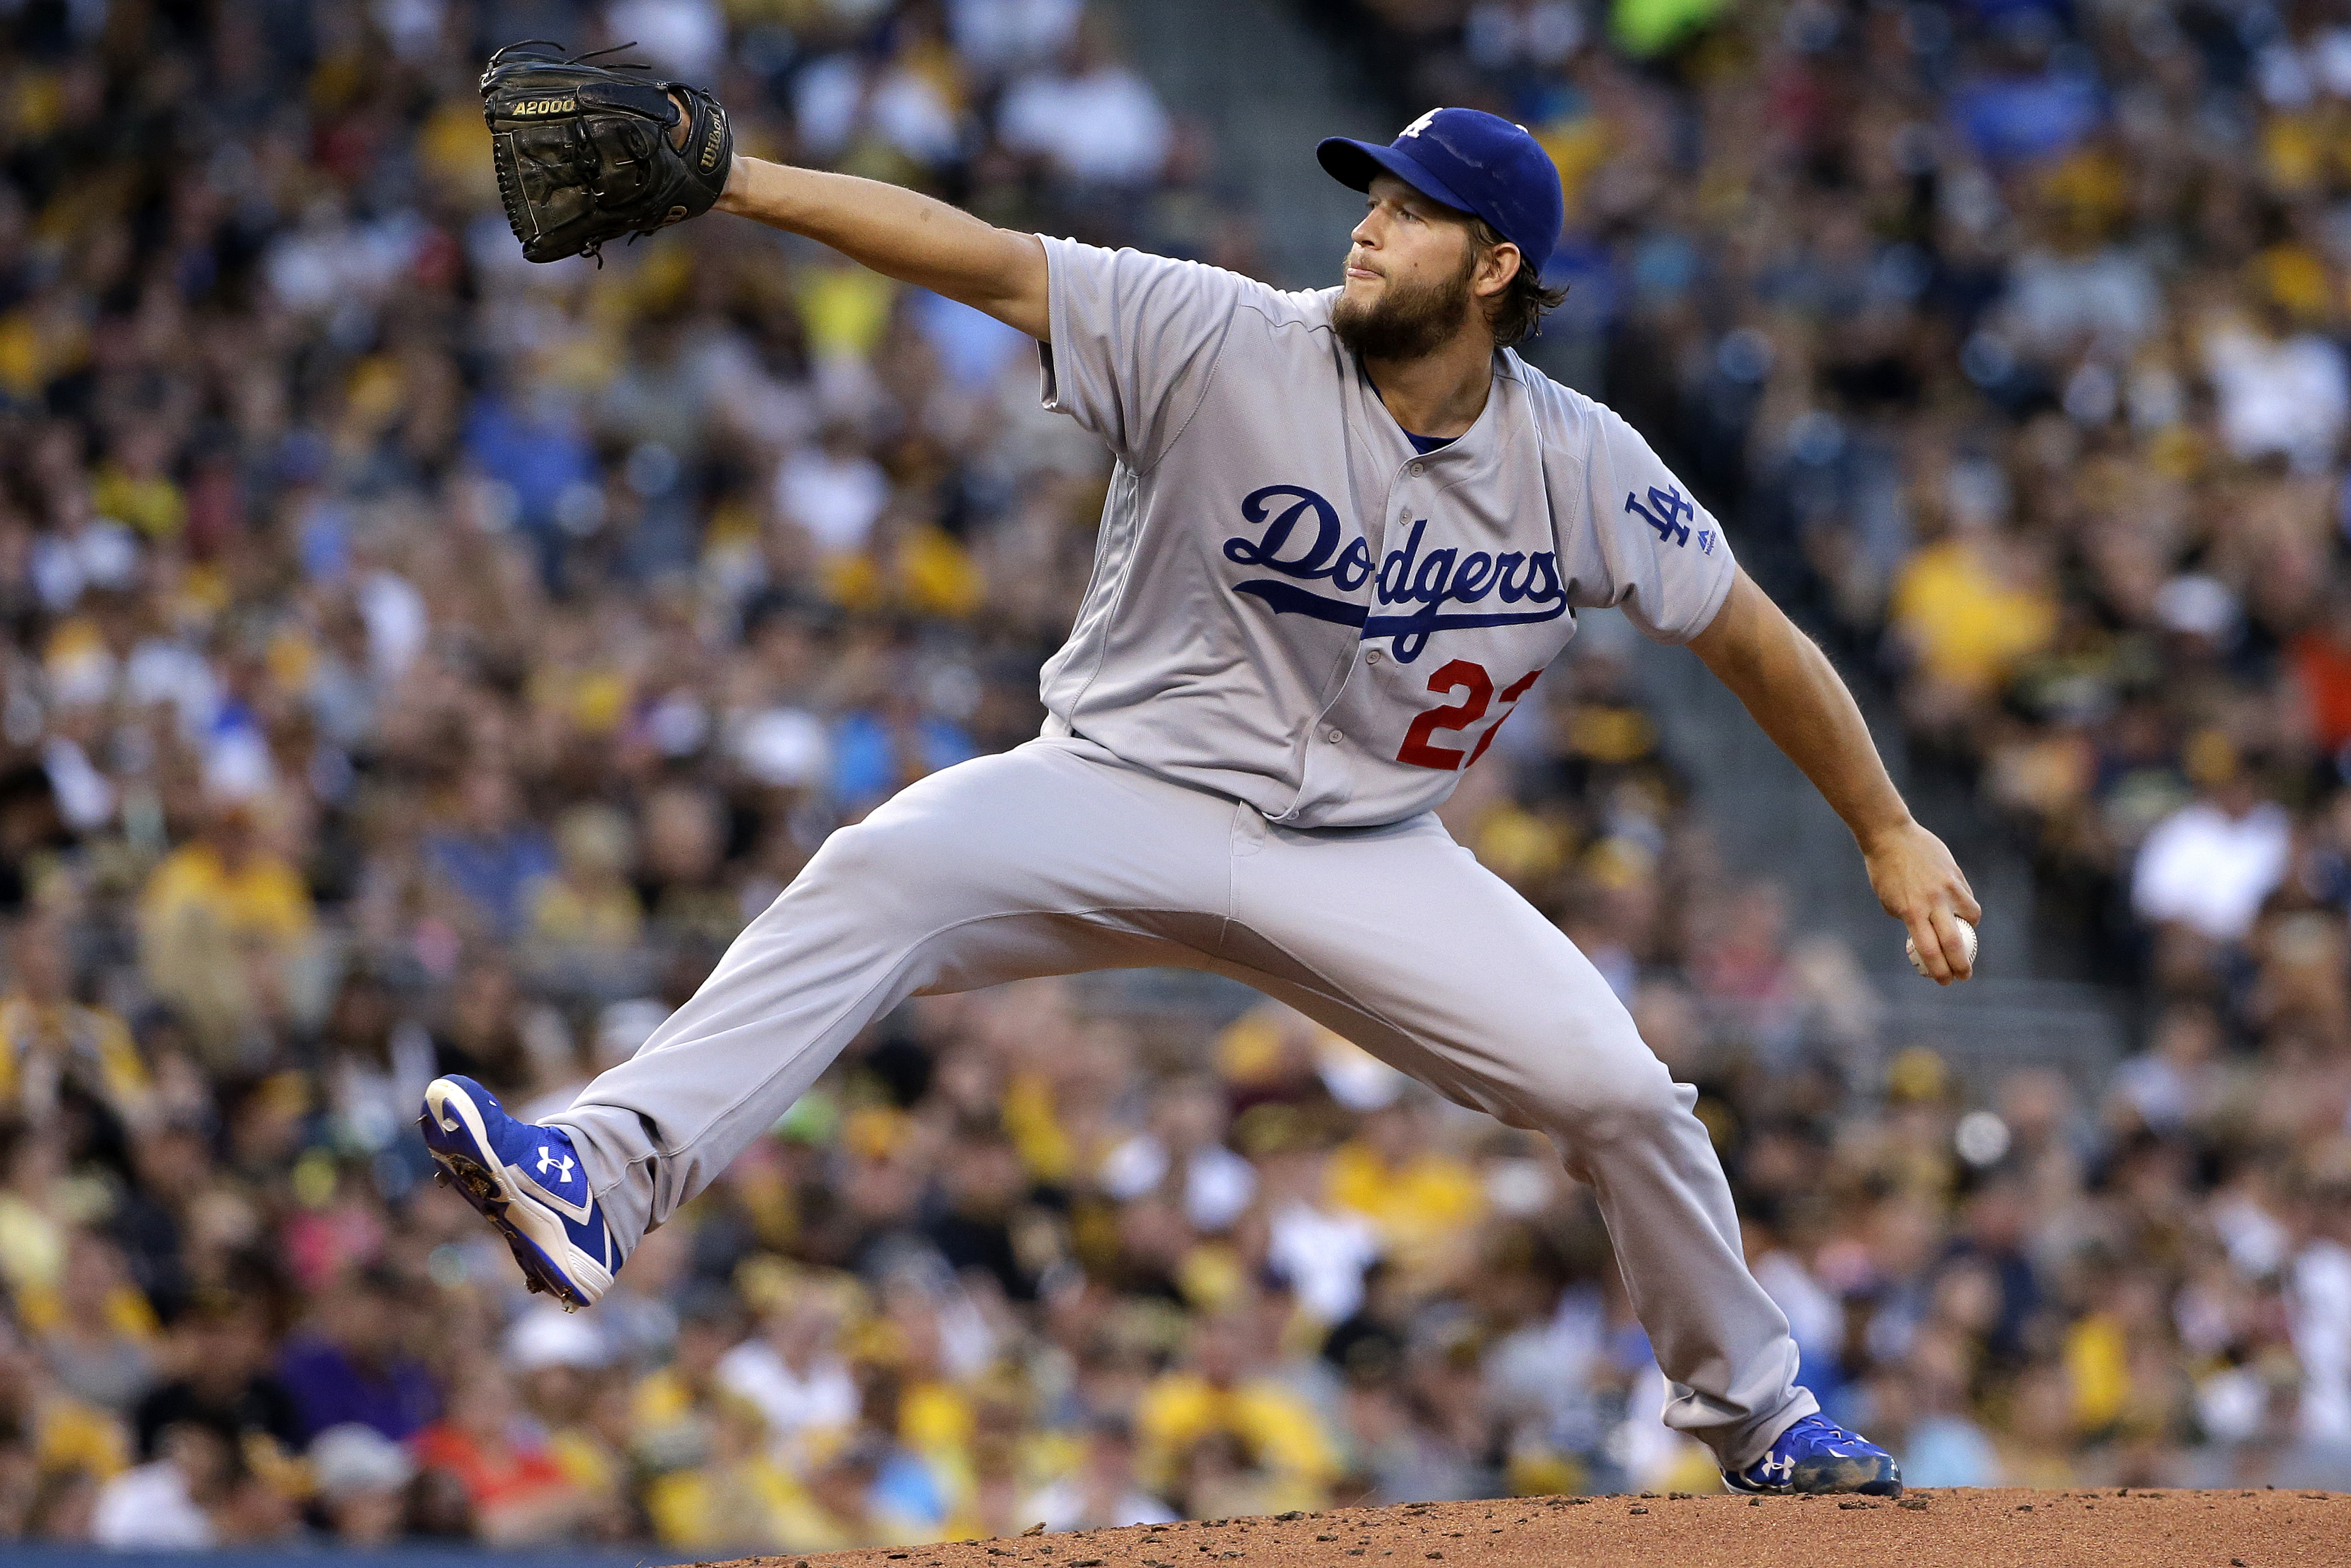 FILE - In this June 26, 2016, file photo, Los Angeles Dodgers starting pitcher Clayton Kershaw delivers in the first inning of a baseball game against the Pittsburgh Pirates in Pittsburgh. Kershaw received an epidural injection for his sore lower back and